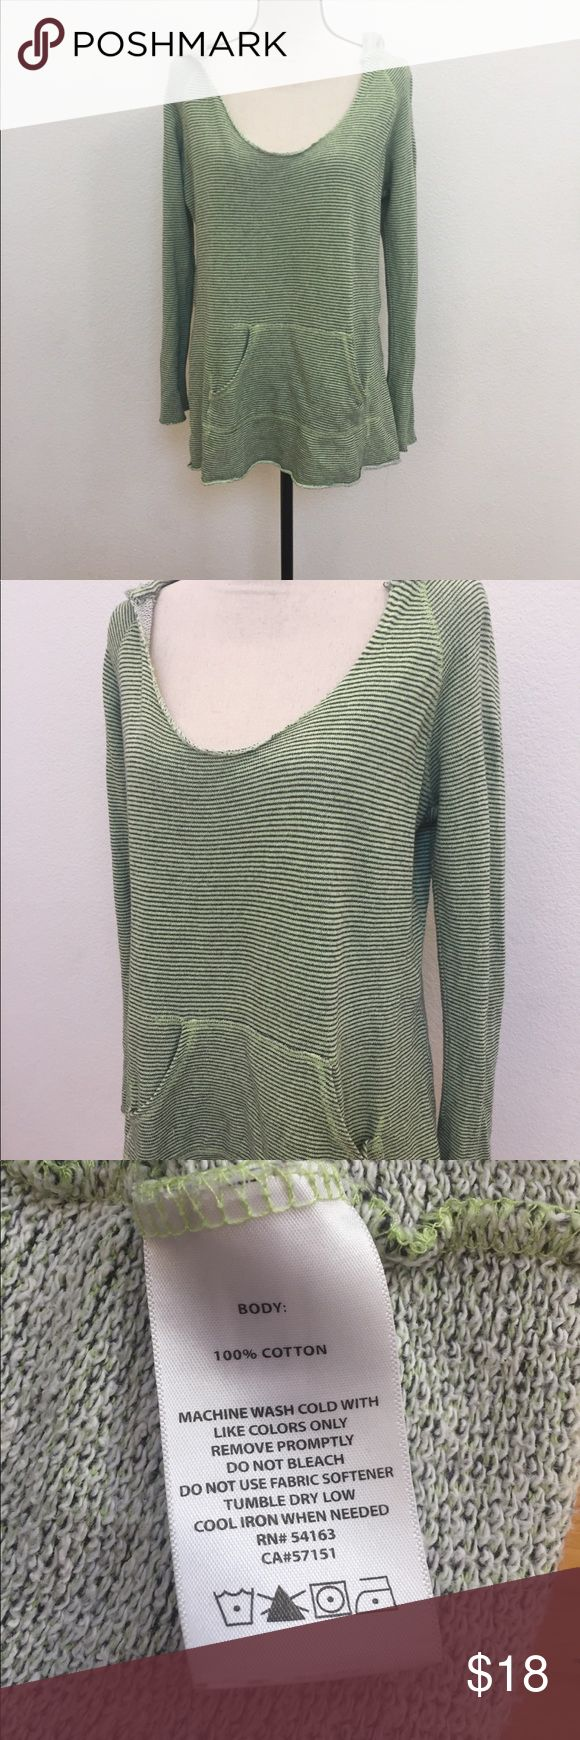 Calvine Klein hoodie sweater green gray Sz small Pre owned condition without stains or holes, size small loose fit, length 26, chest 20, gray and green stripe, long silvers, hoodie sweater Calvin Klein Tops Sweatshirts & Hoodies